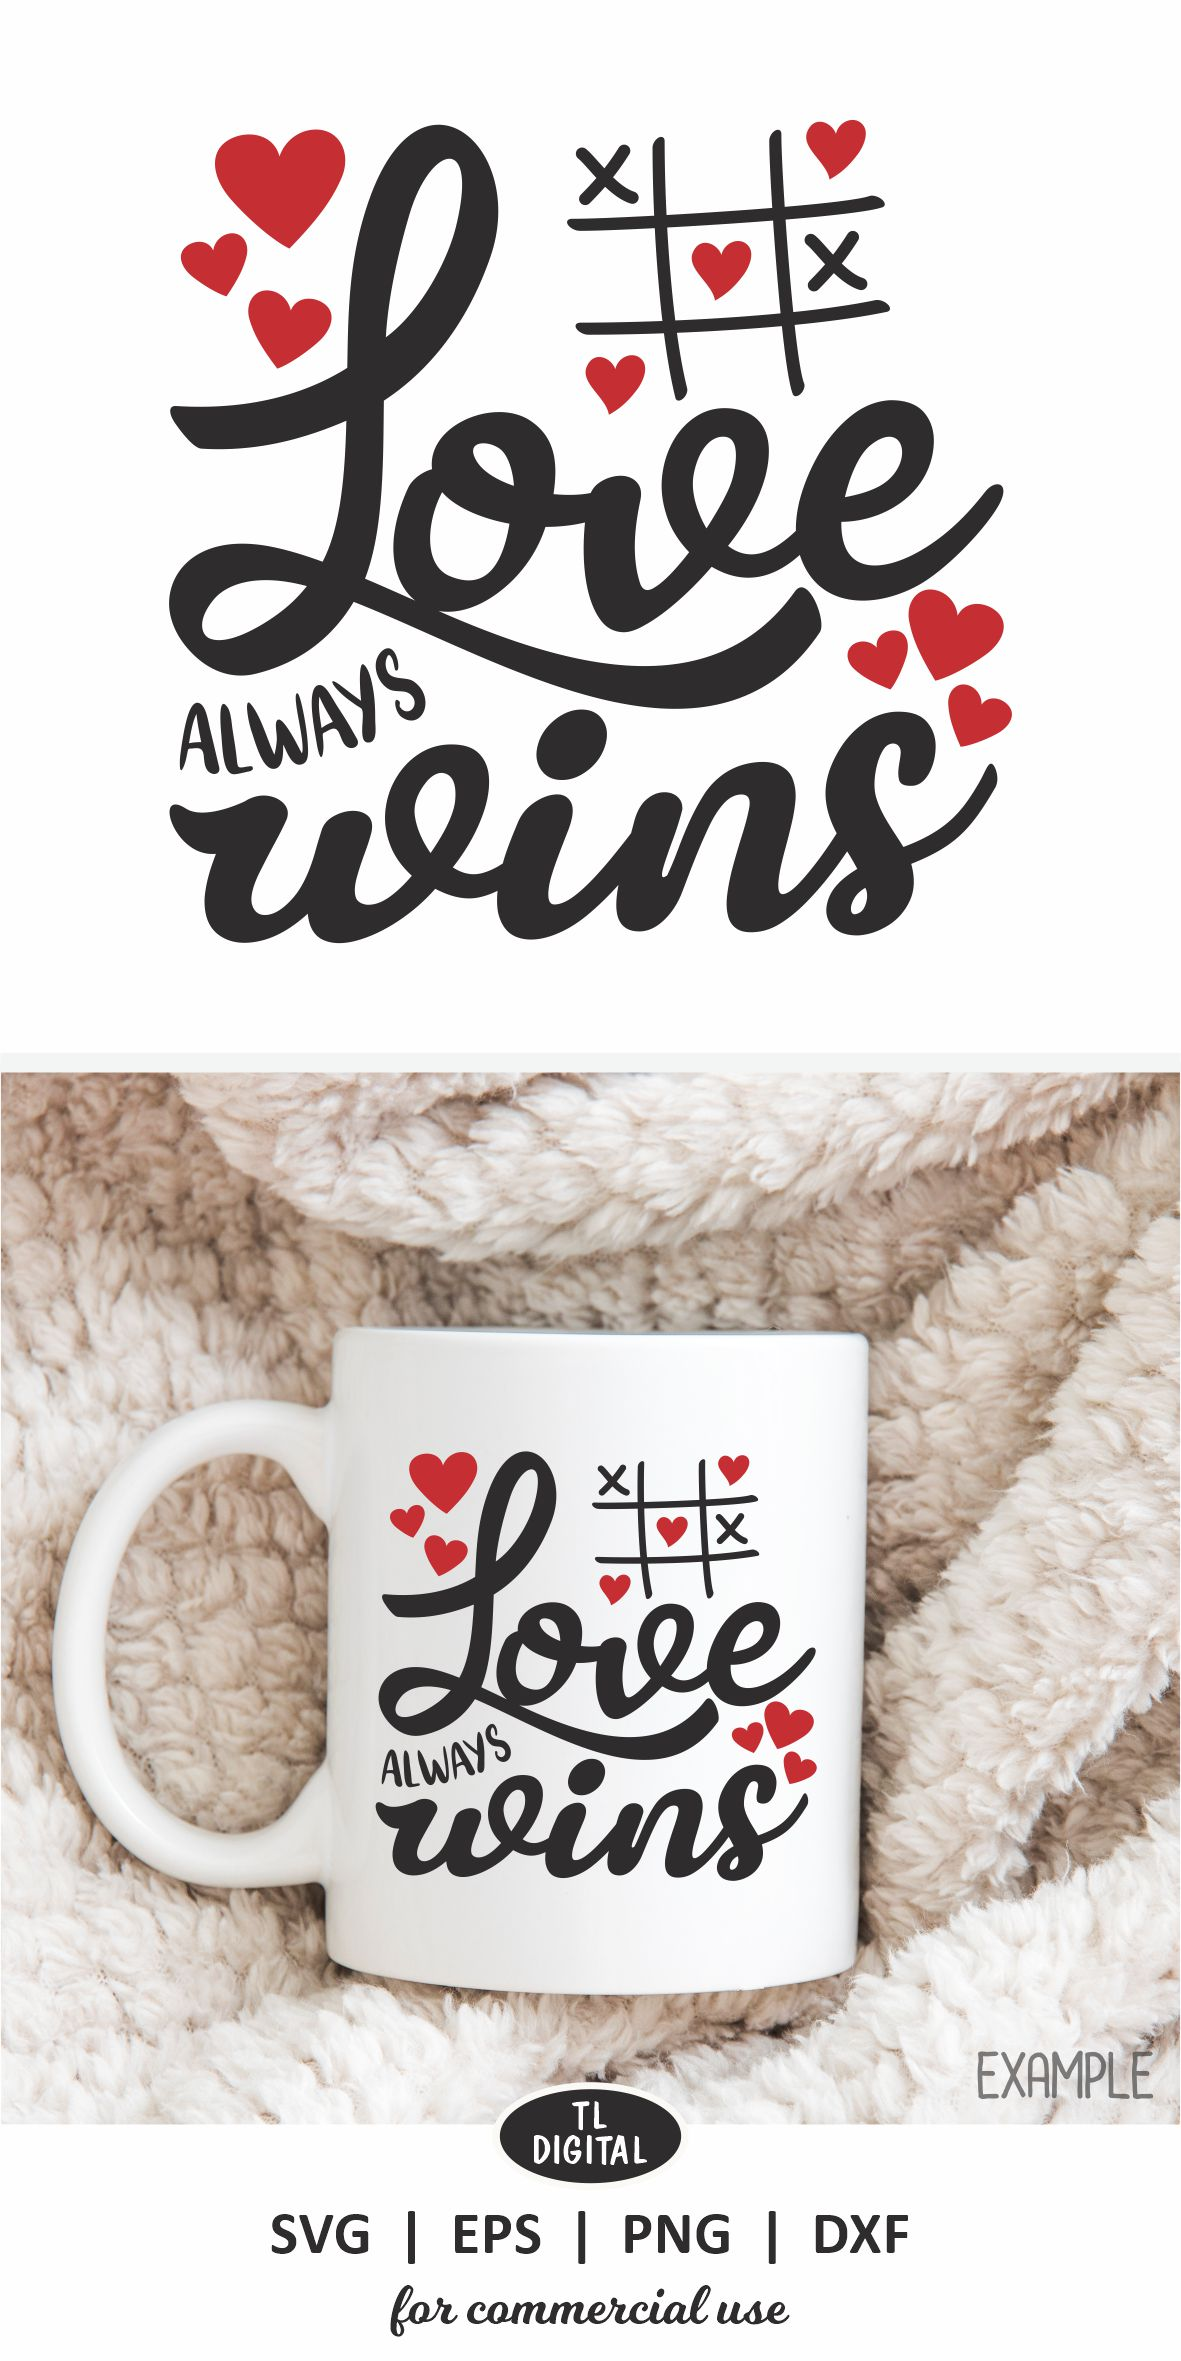 Love Always Wins - SVG   EPS   PNG  DXF - Valentines Graphic example image 3